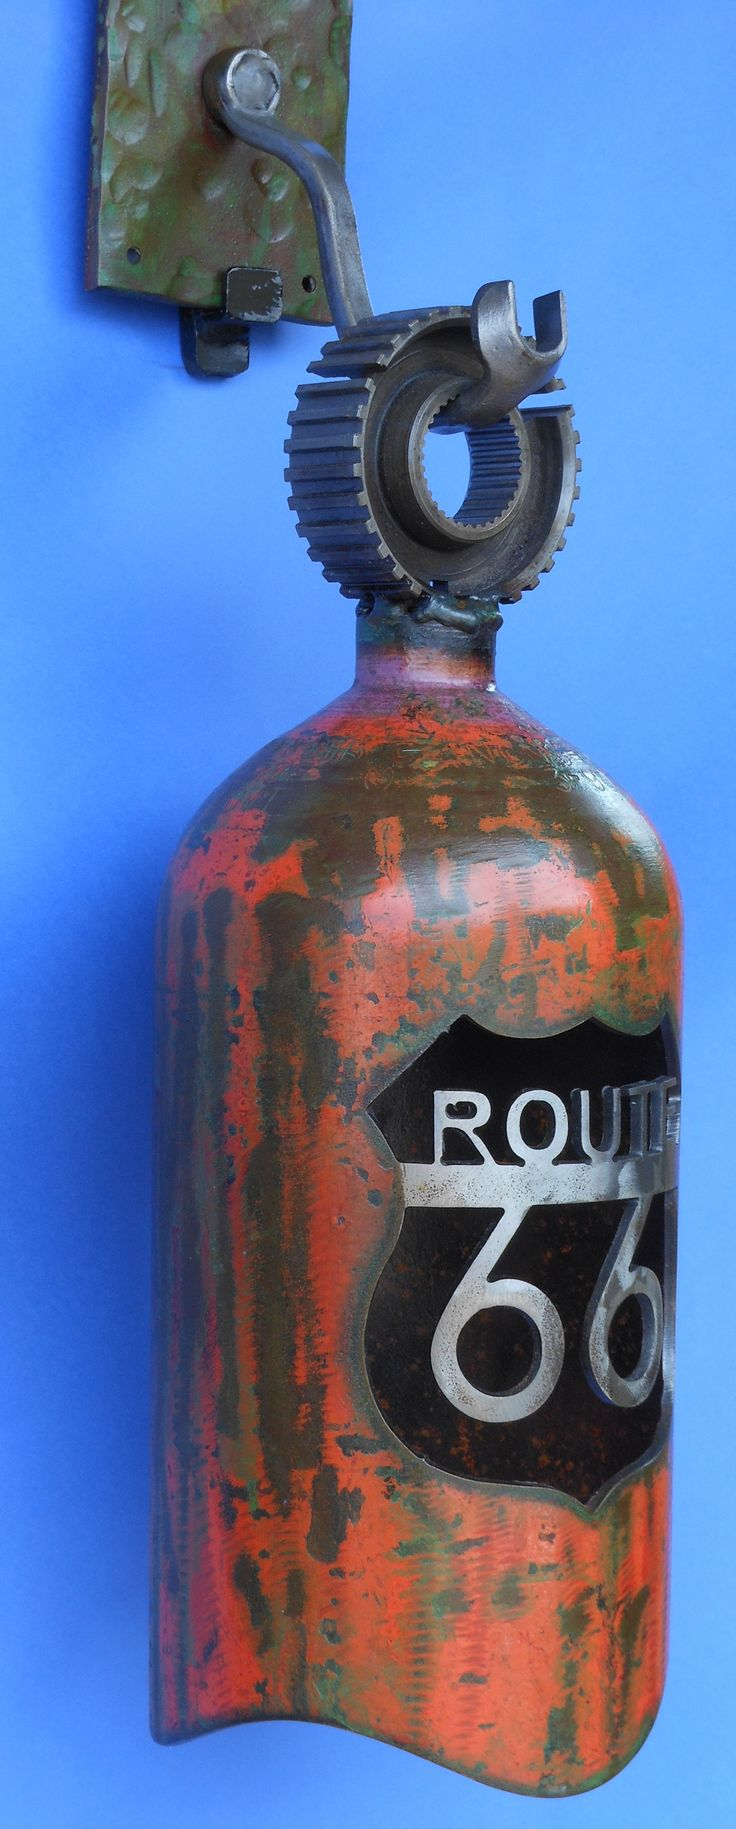 Recycled bells plasma cut. Fire brigade logo and a fire extinguisher would be awesome